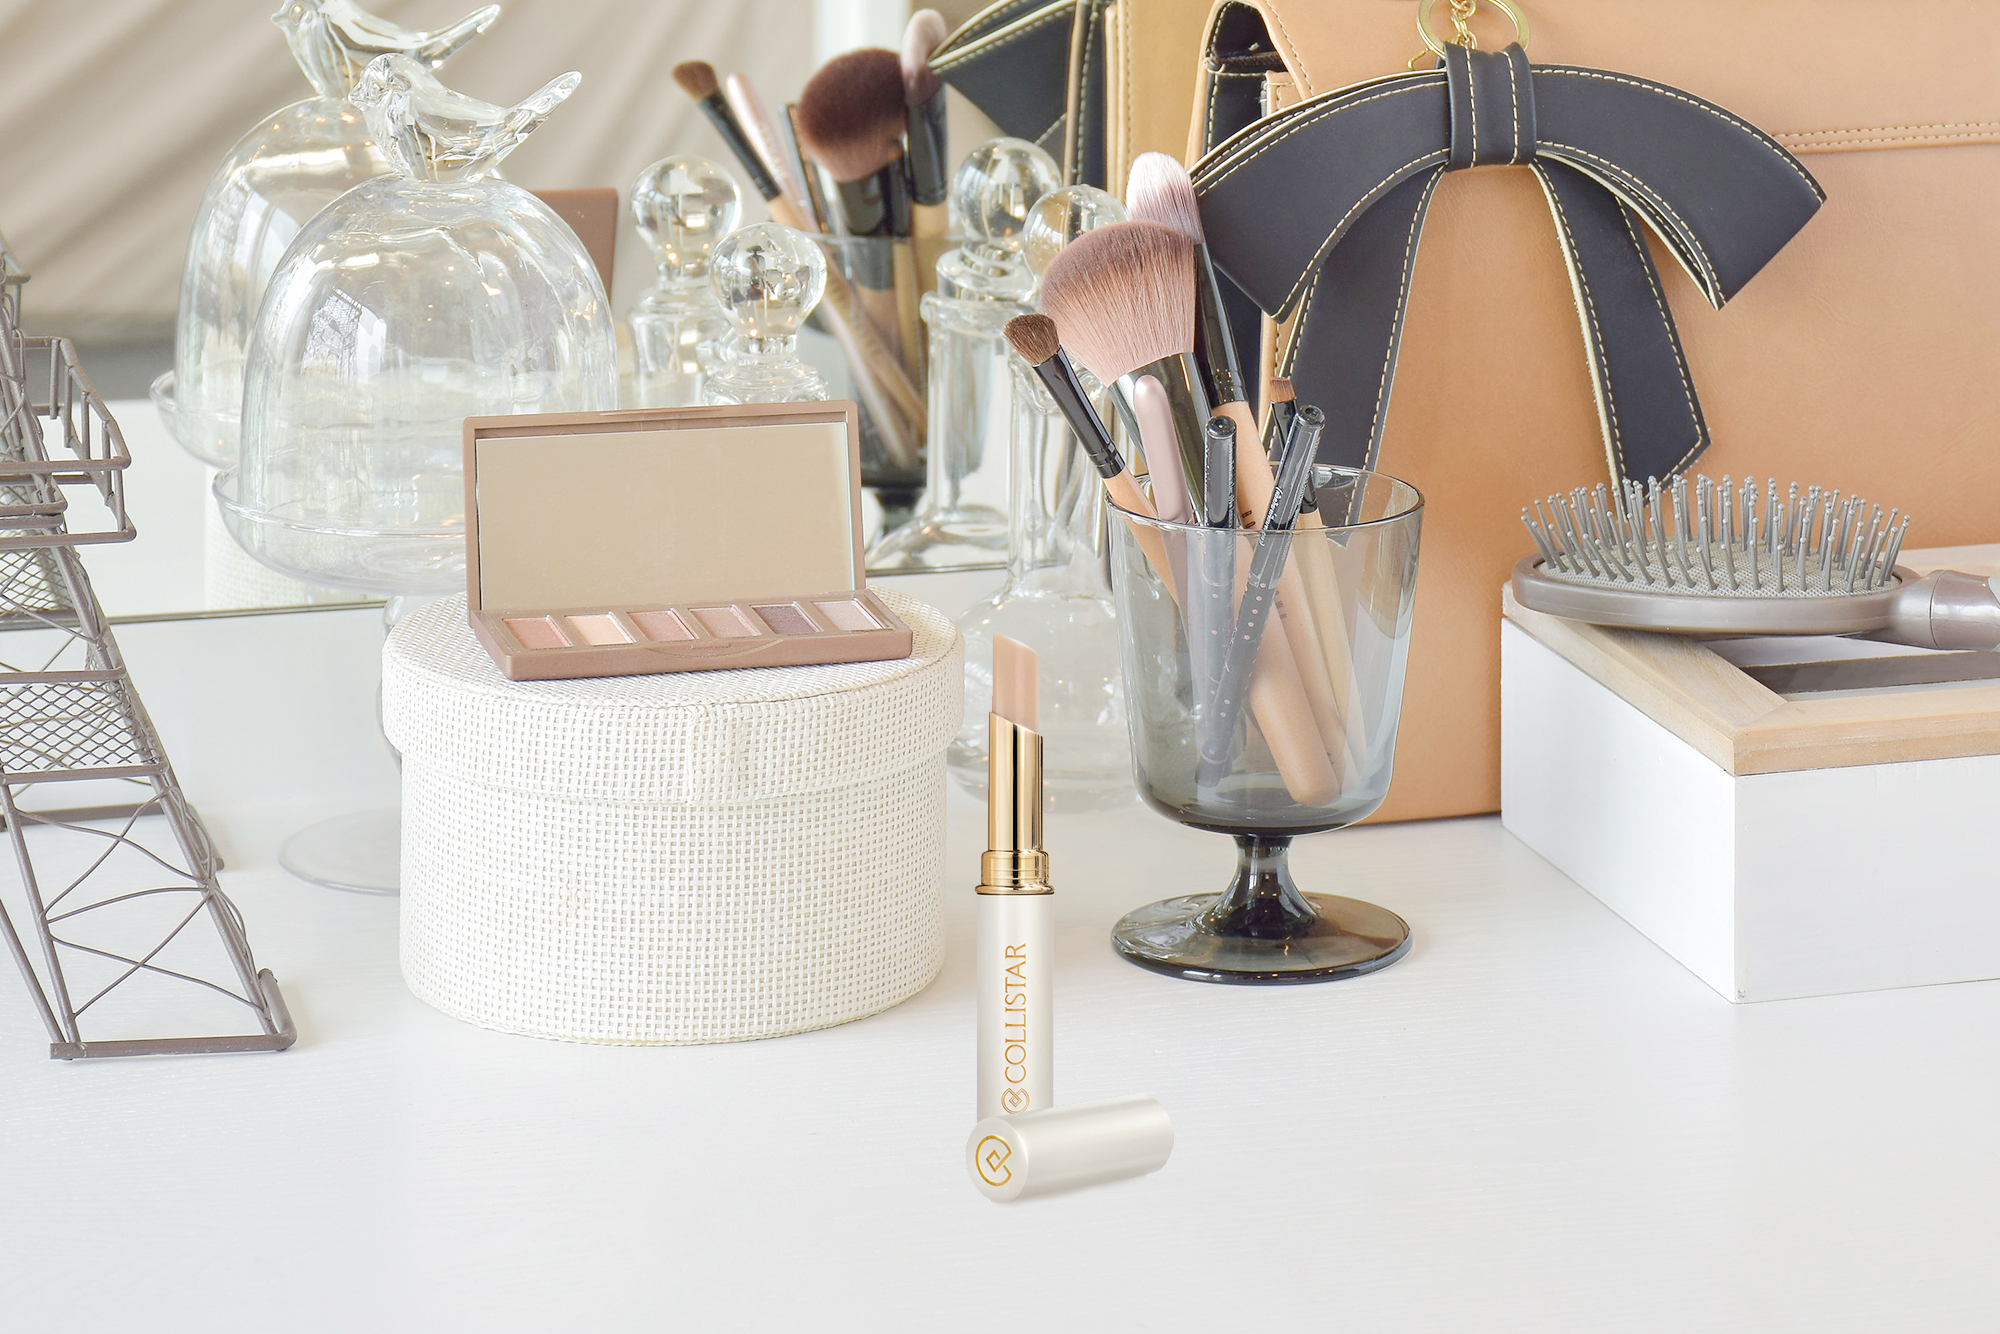 56114360 - make up items and leather bag on dressing table